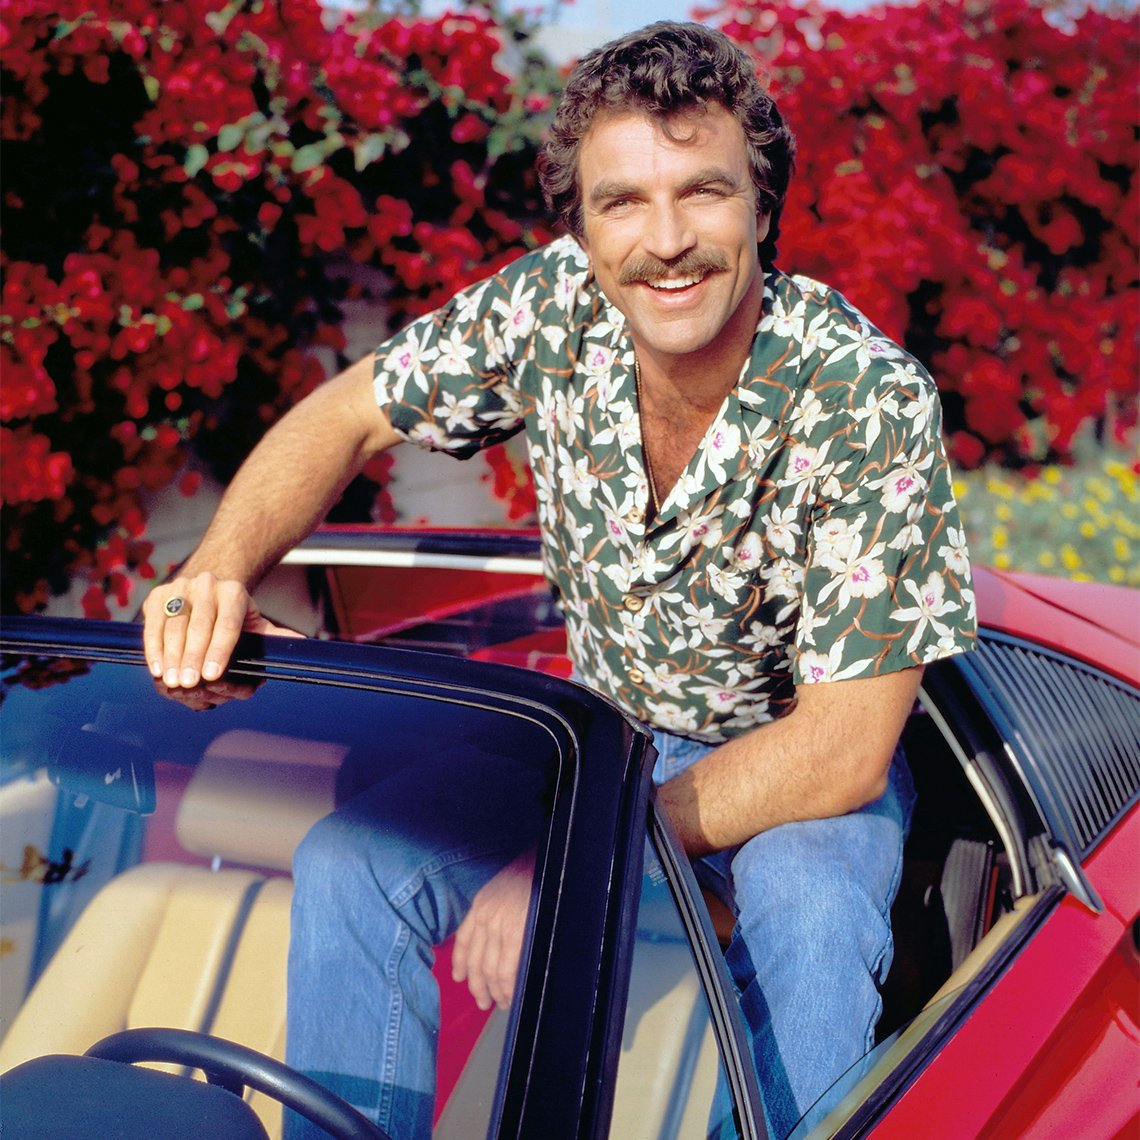 Tom Selleck wears a floral shirt and sits in a red Ferrari in 'Magnum, P.I'